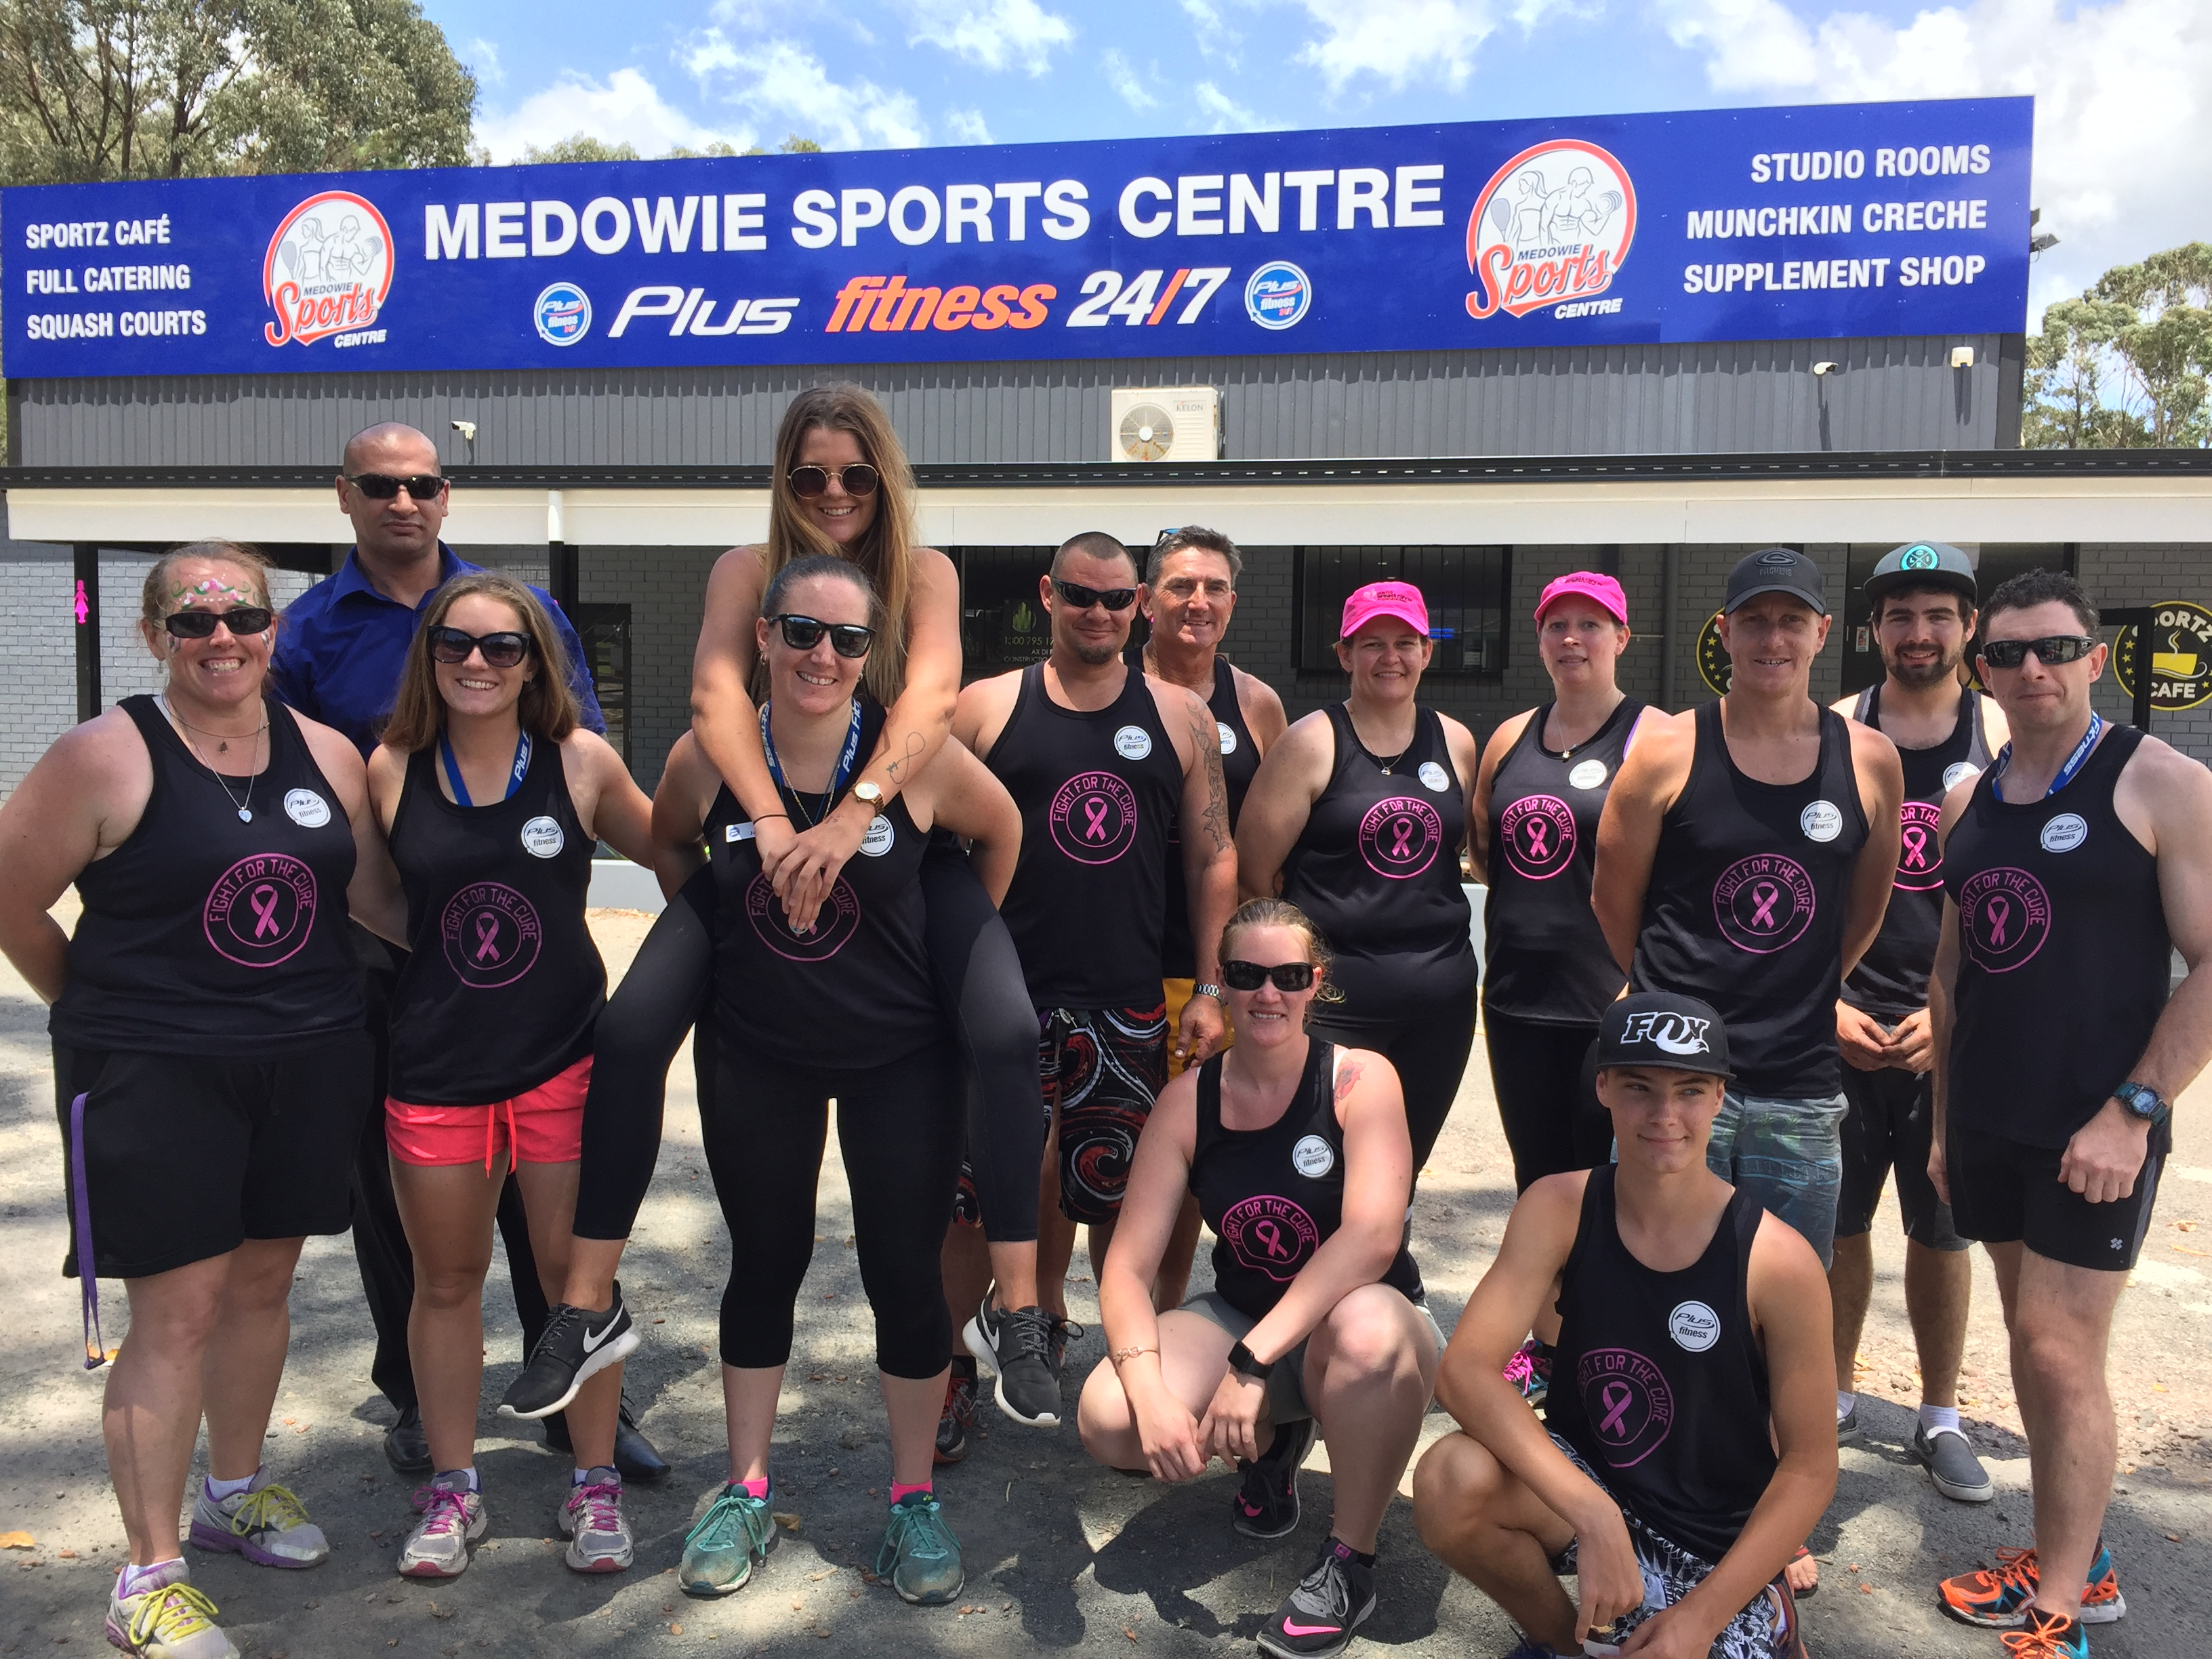 1.Staff and Clients in their Breast Cancer Fight for the Cure singlets.